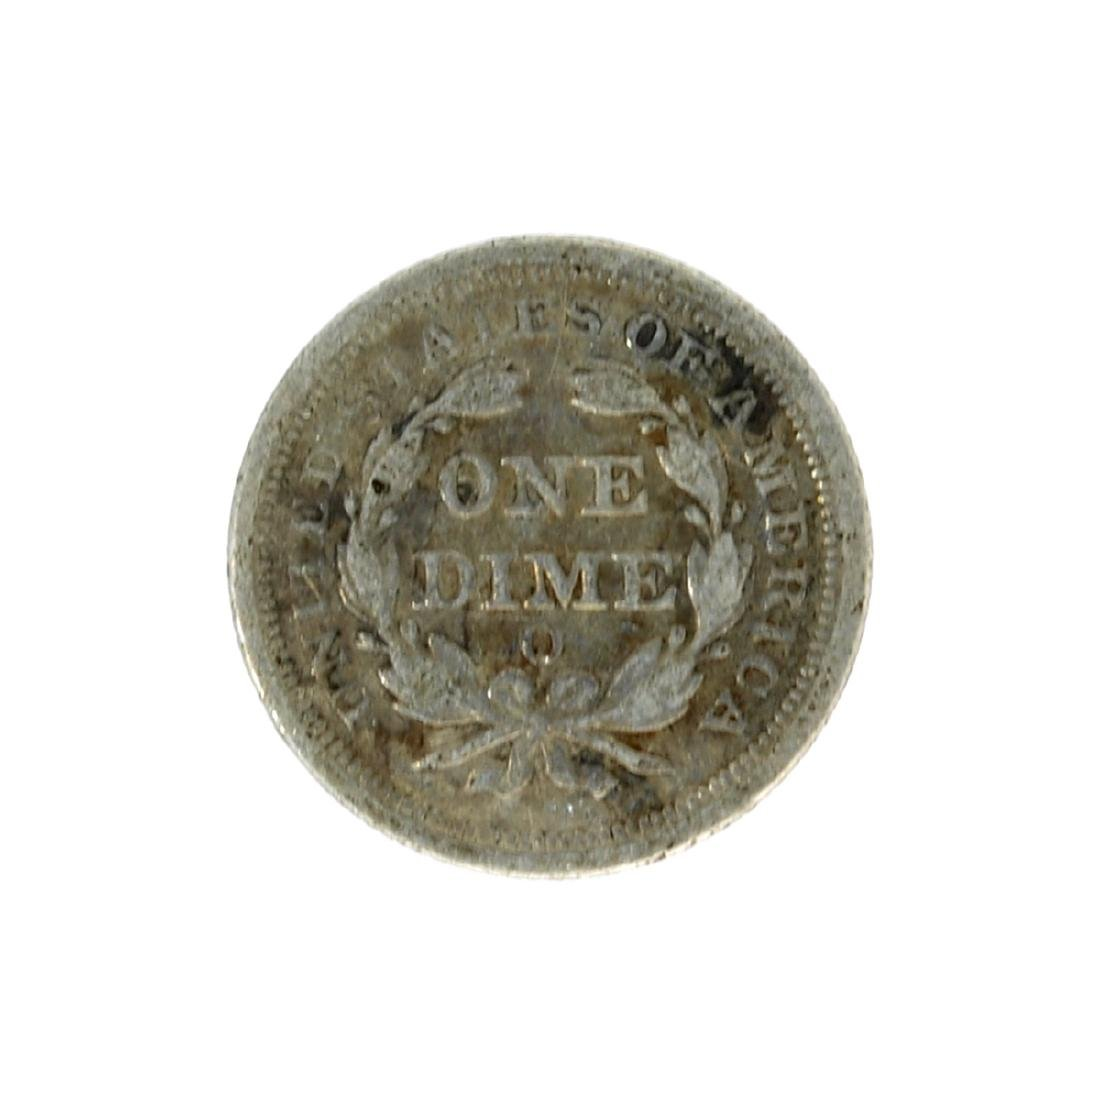 1854-O Liberty Seated Arrows At Date Dime Coin - 2